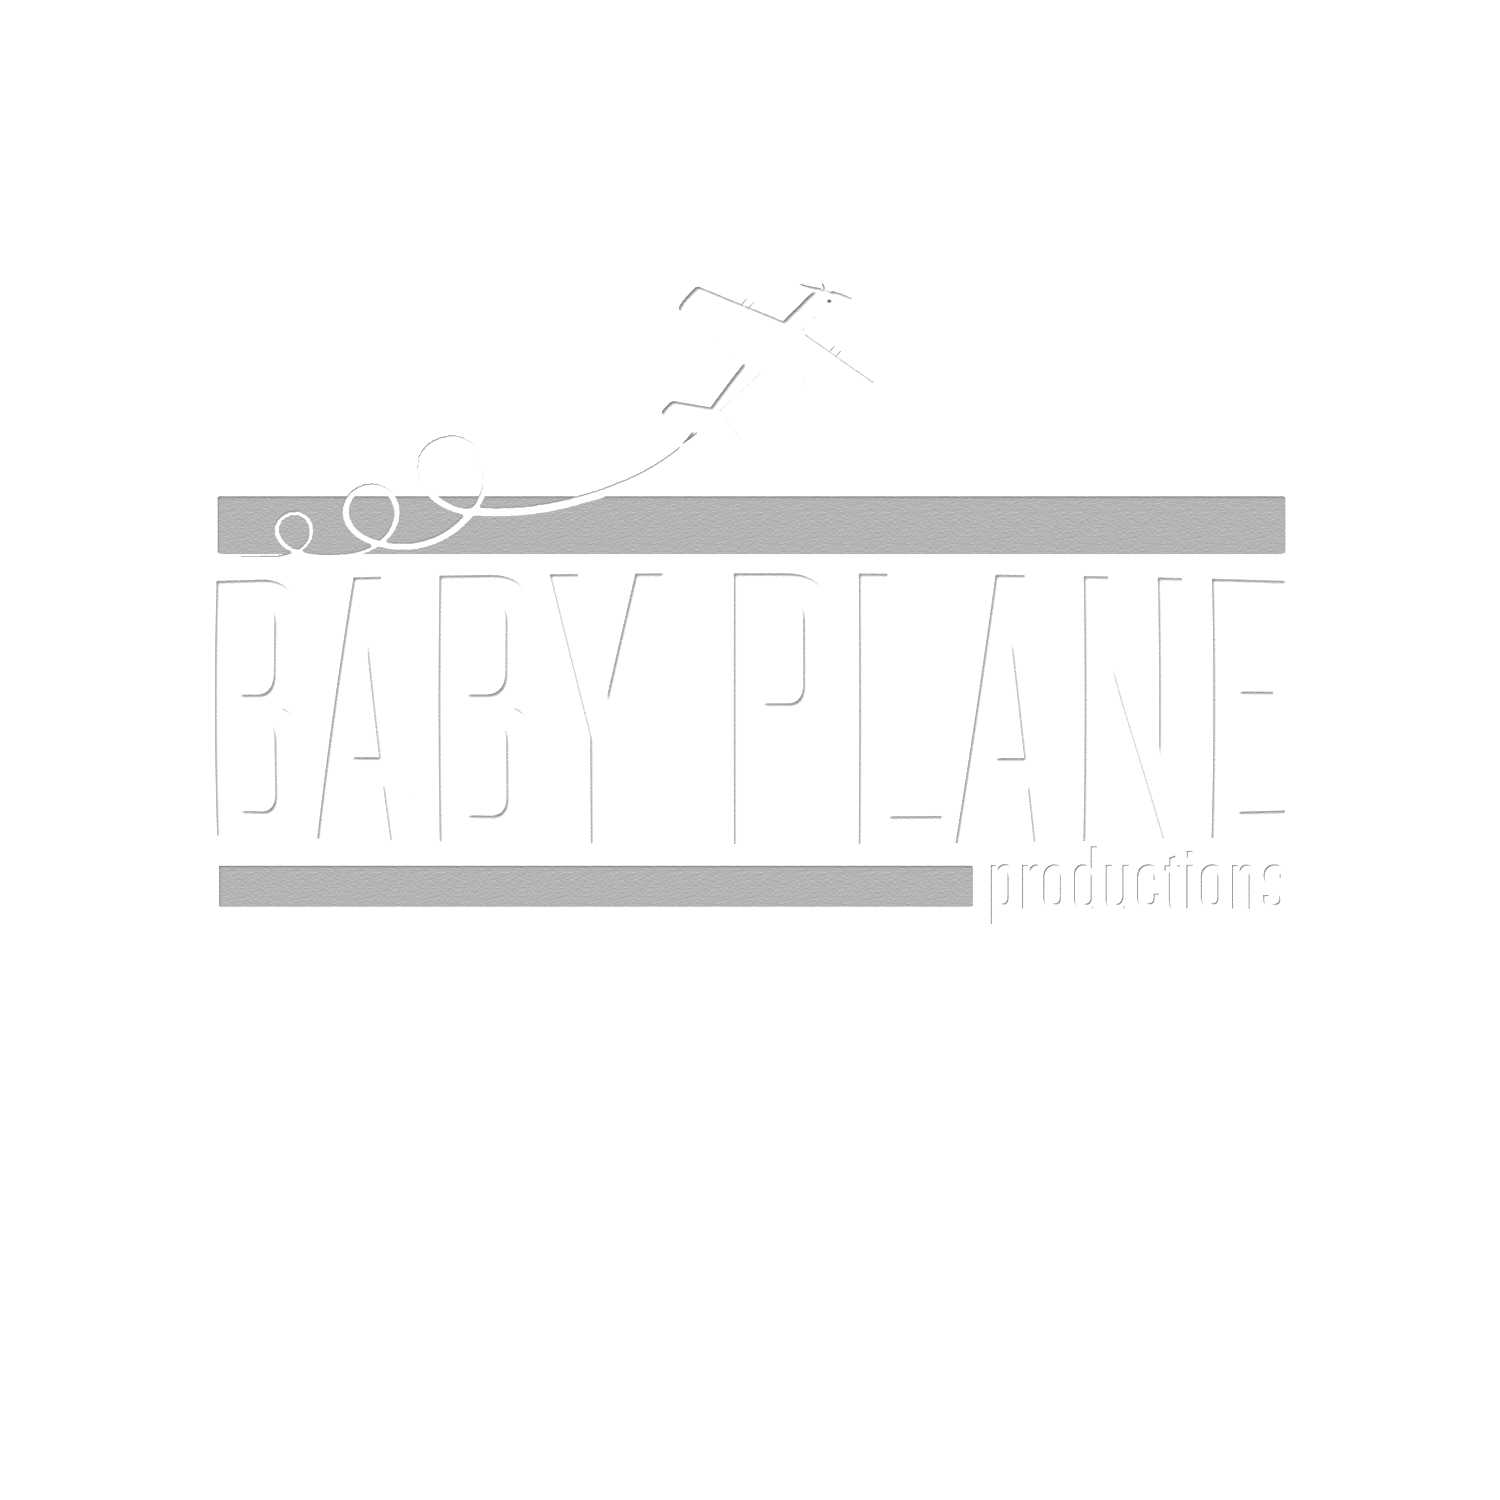 Baby Plane Productions